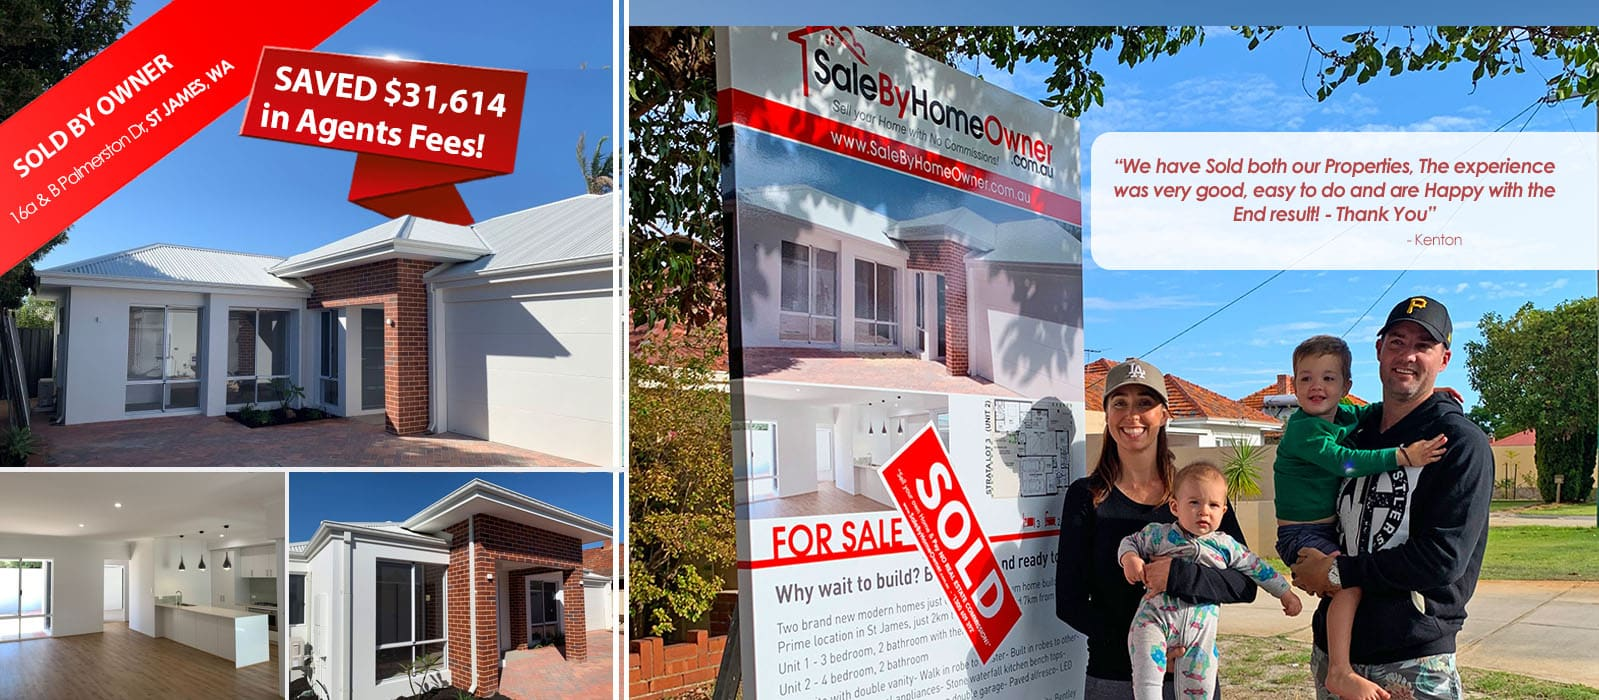 View Houses for sale by owner in ACT. Search houses for sale privately in ACT